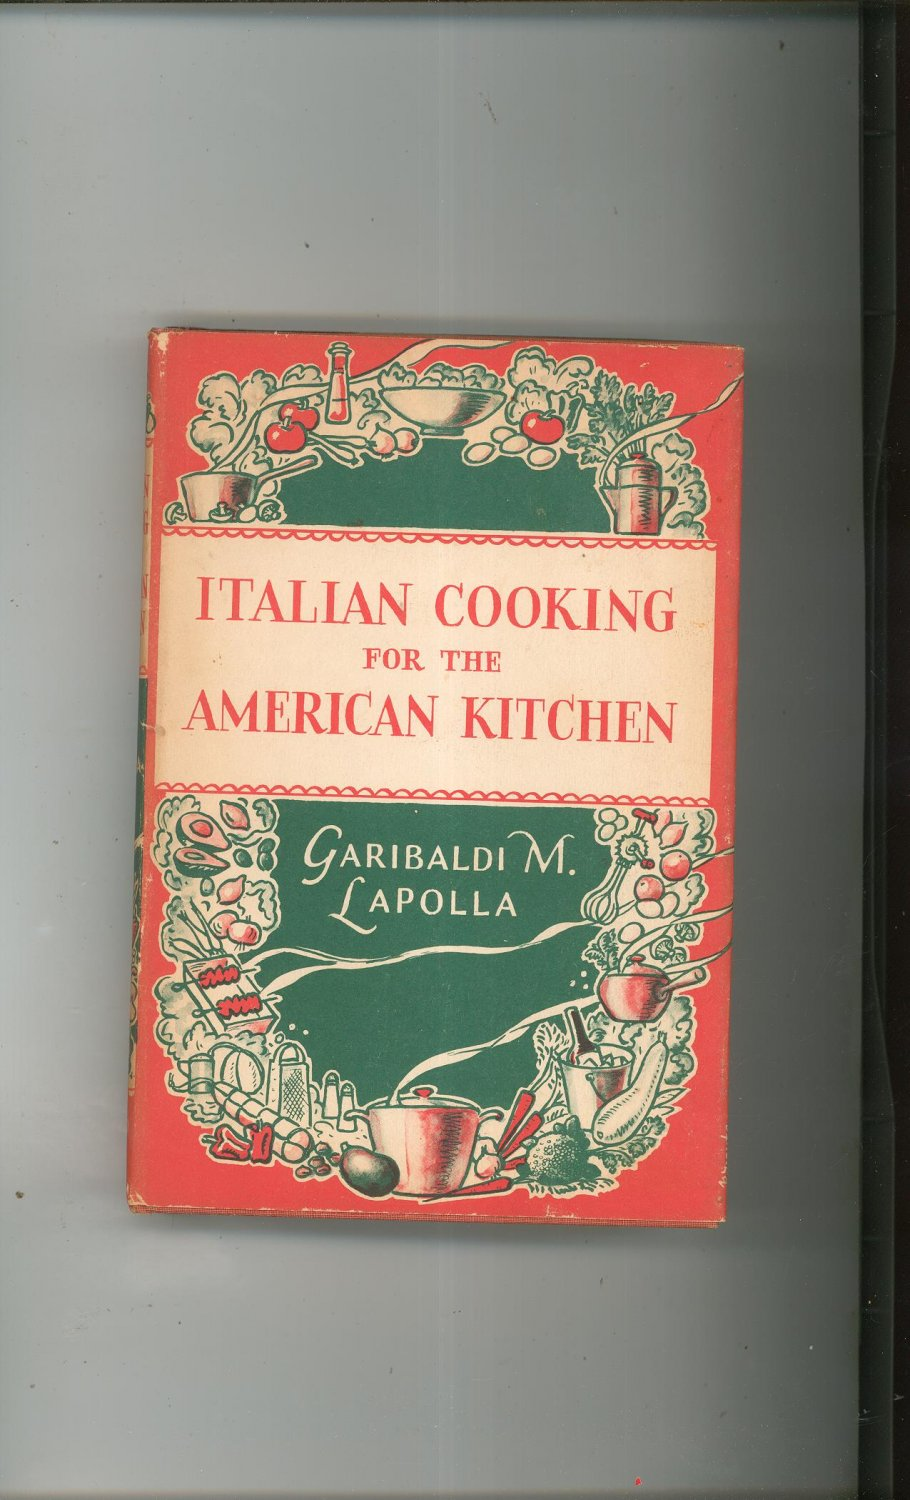 Italian Cookbook Cover : Vintage italian cooking for the american kitchen cookbook